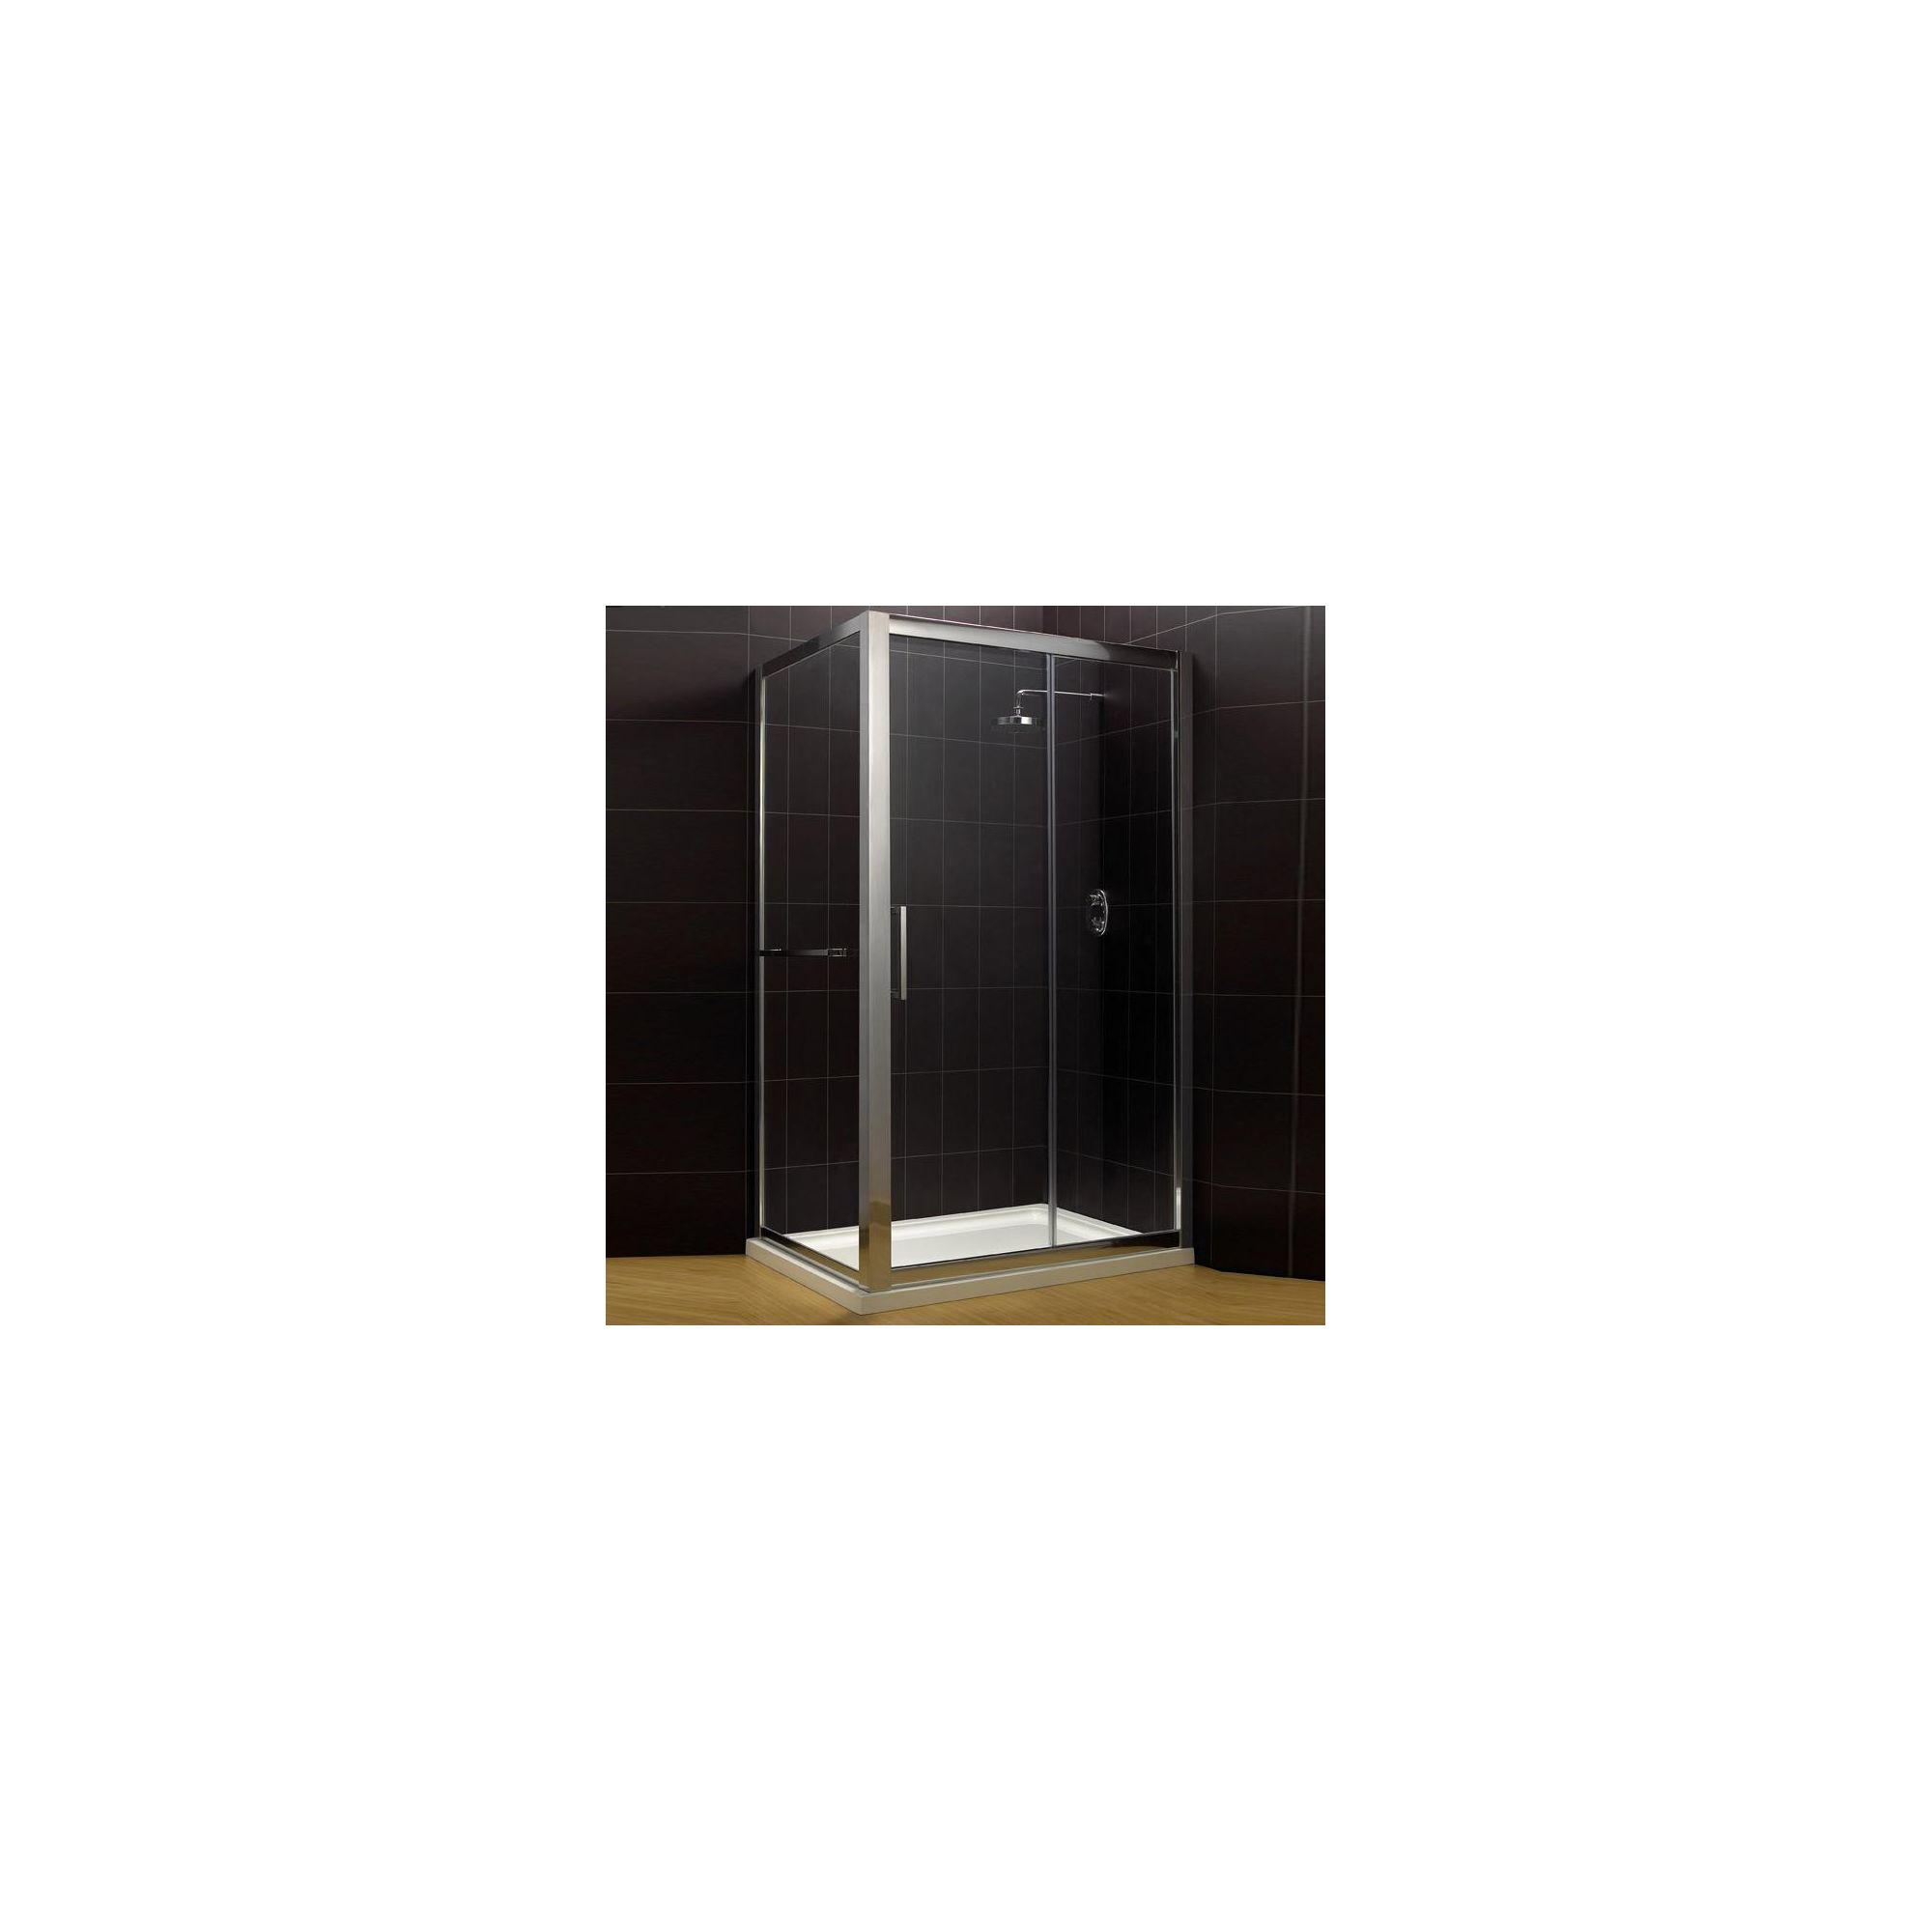 Duchy Supreme Silver Sliding Door Shower Enclosure with Towel Rail, 1100mm x 760mm, Standard Tray, 8mm Glass at Tesco Direct